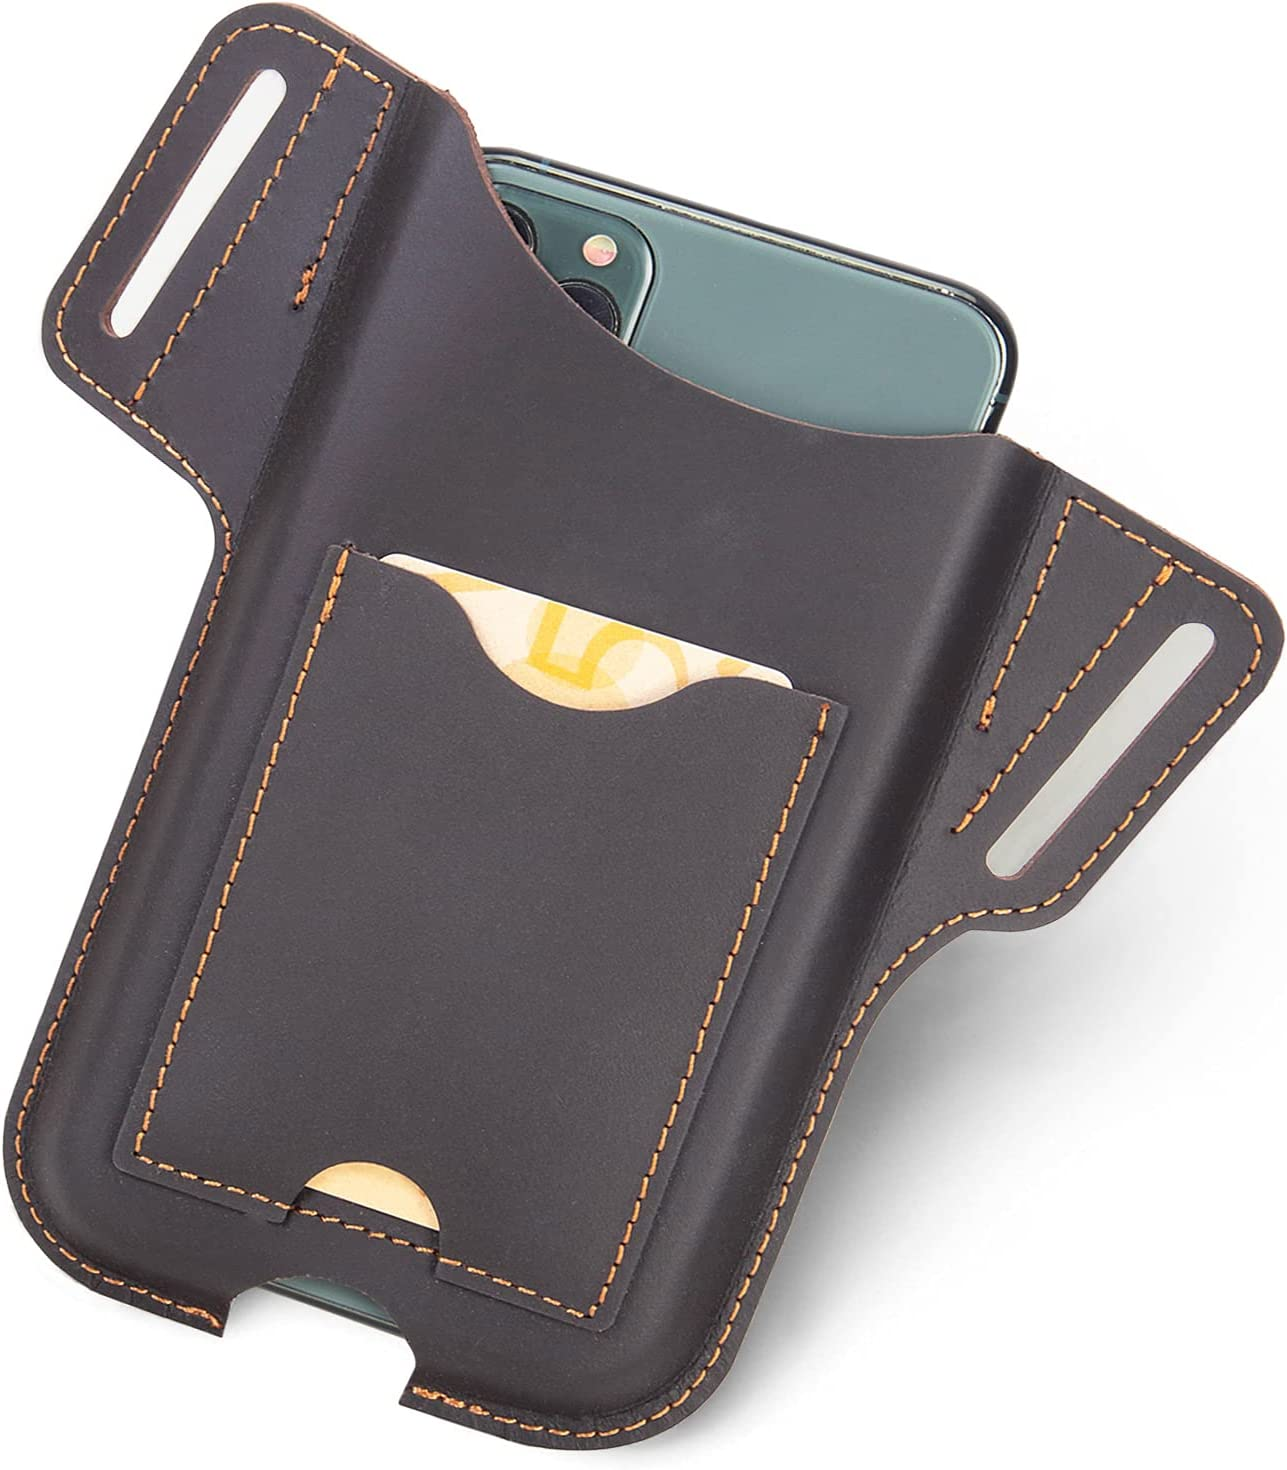 EASYANT Men Leather Phone Holster, Cell Phone Holster for Belt Loop, Waist Card Bag with Phone Belt Holster Pouch for iPhone Samsung Galaxy Brown